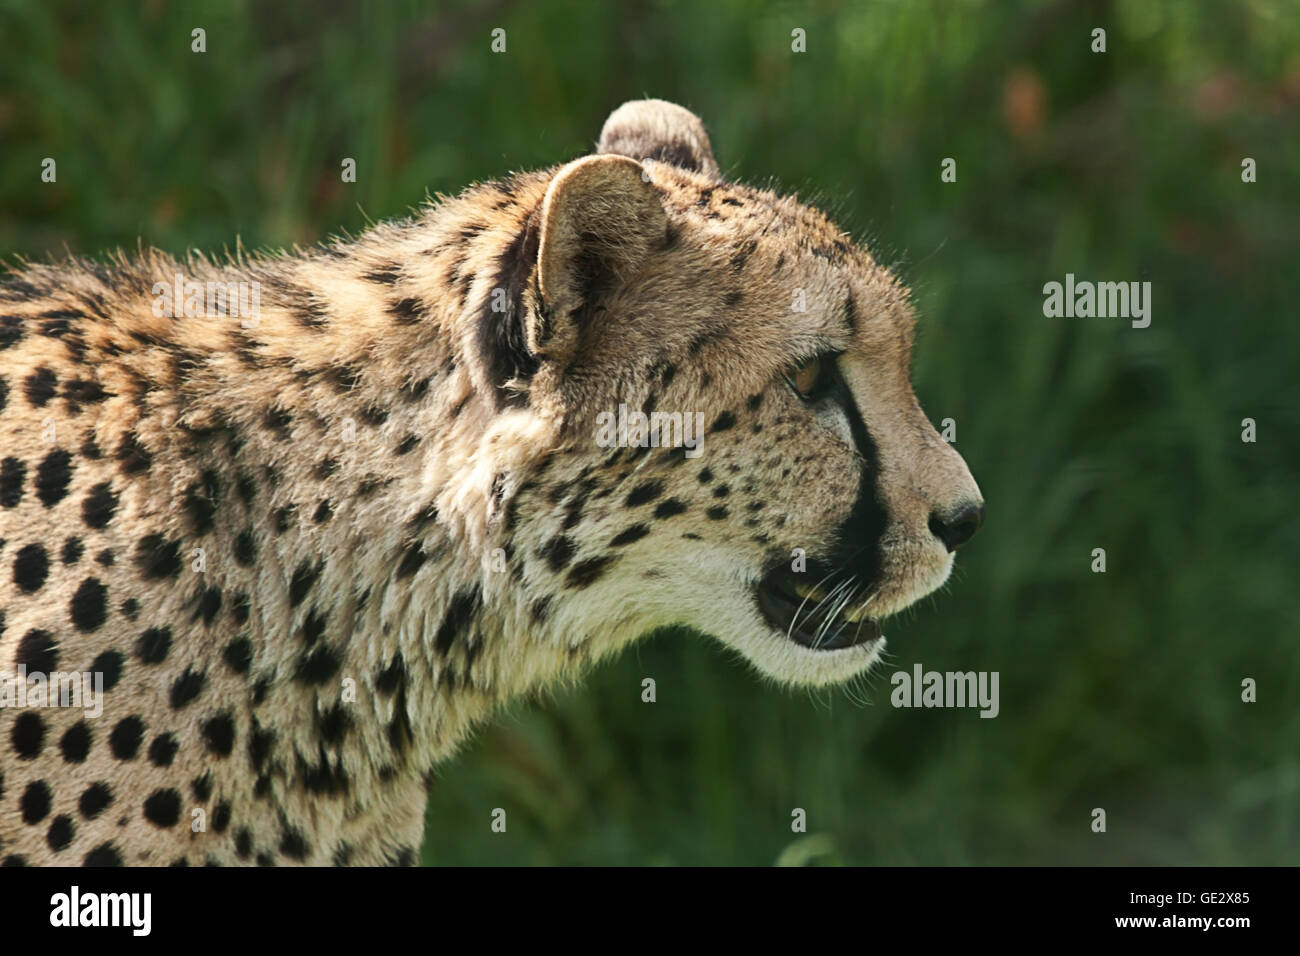 photographic portrait of an alert Cheetah - Stock Image